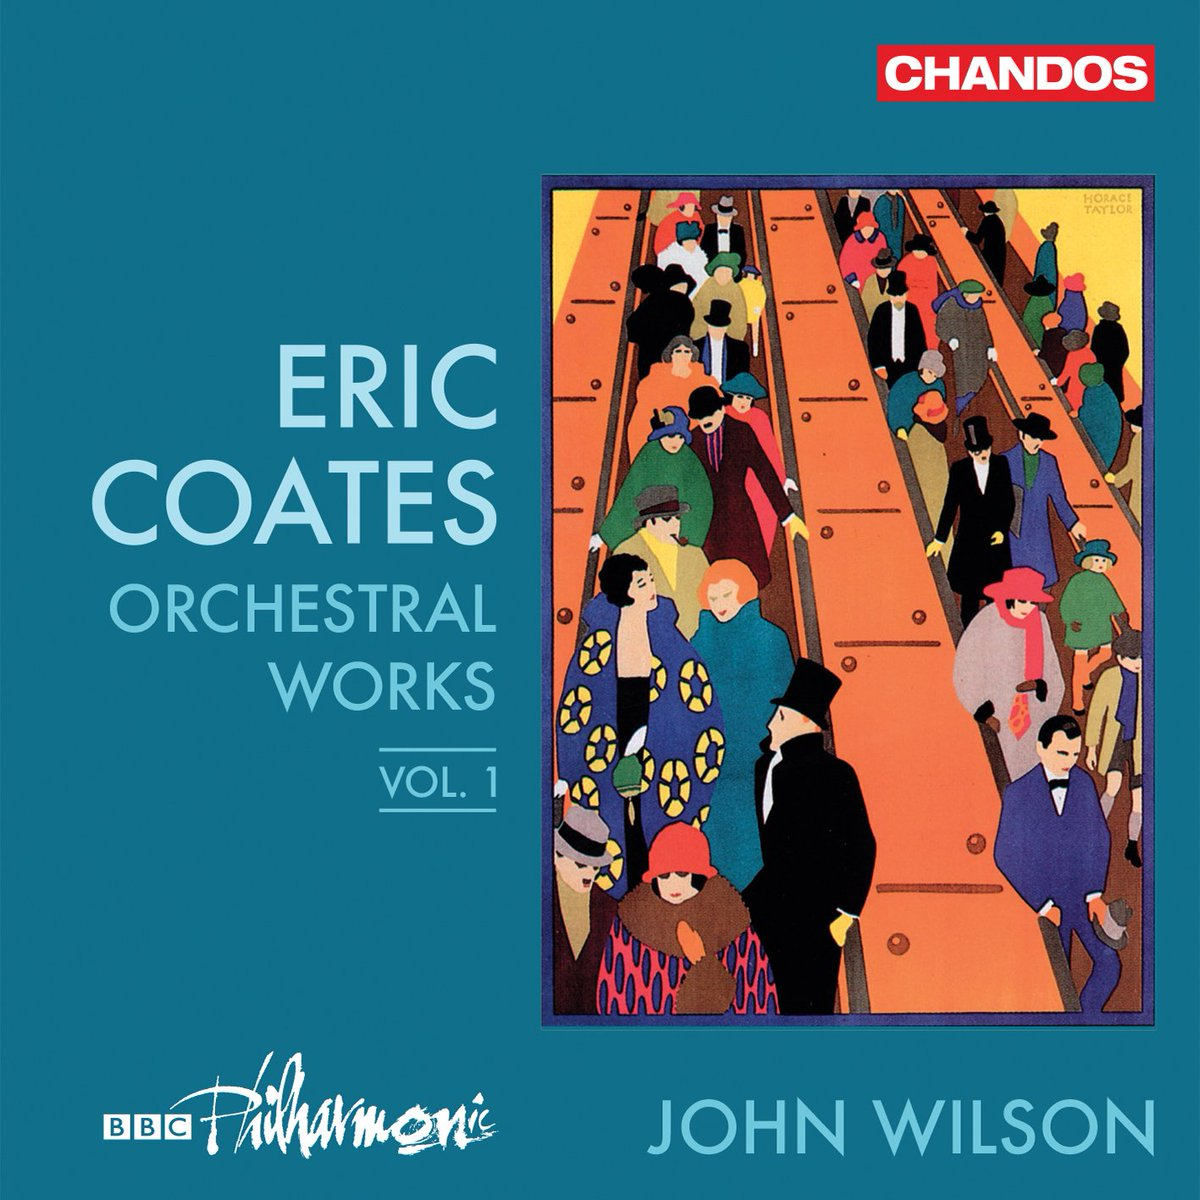 Loving this new disc of Eric Coates' orchestral music, the first in a series by @BBCPhilharmonic under John Wilson. Due to be released October 4, 2019. BTW, this includes the famous Sleepy Lagoon, the Desert Island Discs theme song. https://t.co/f0AU1At7R1